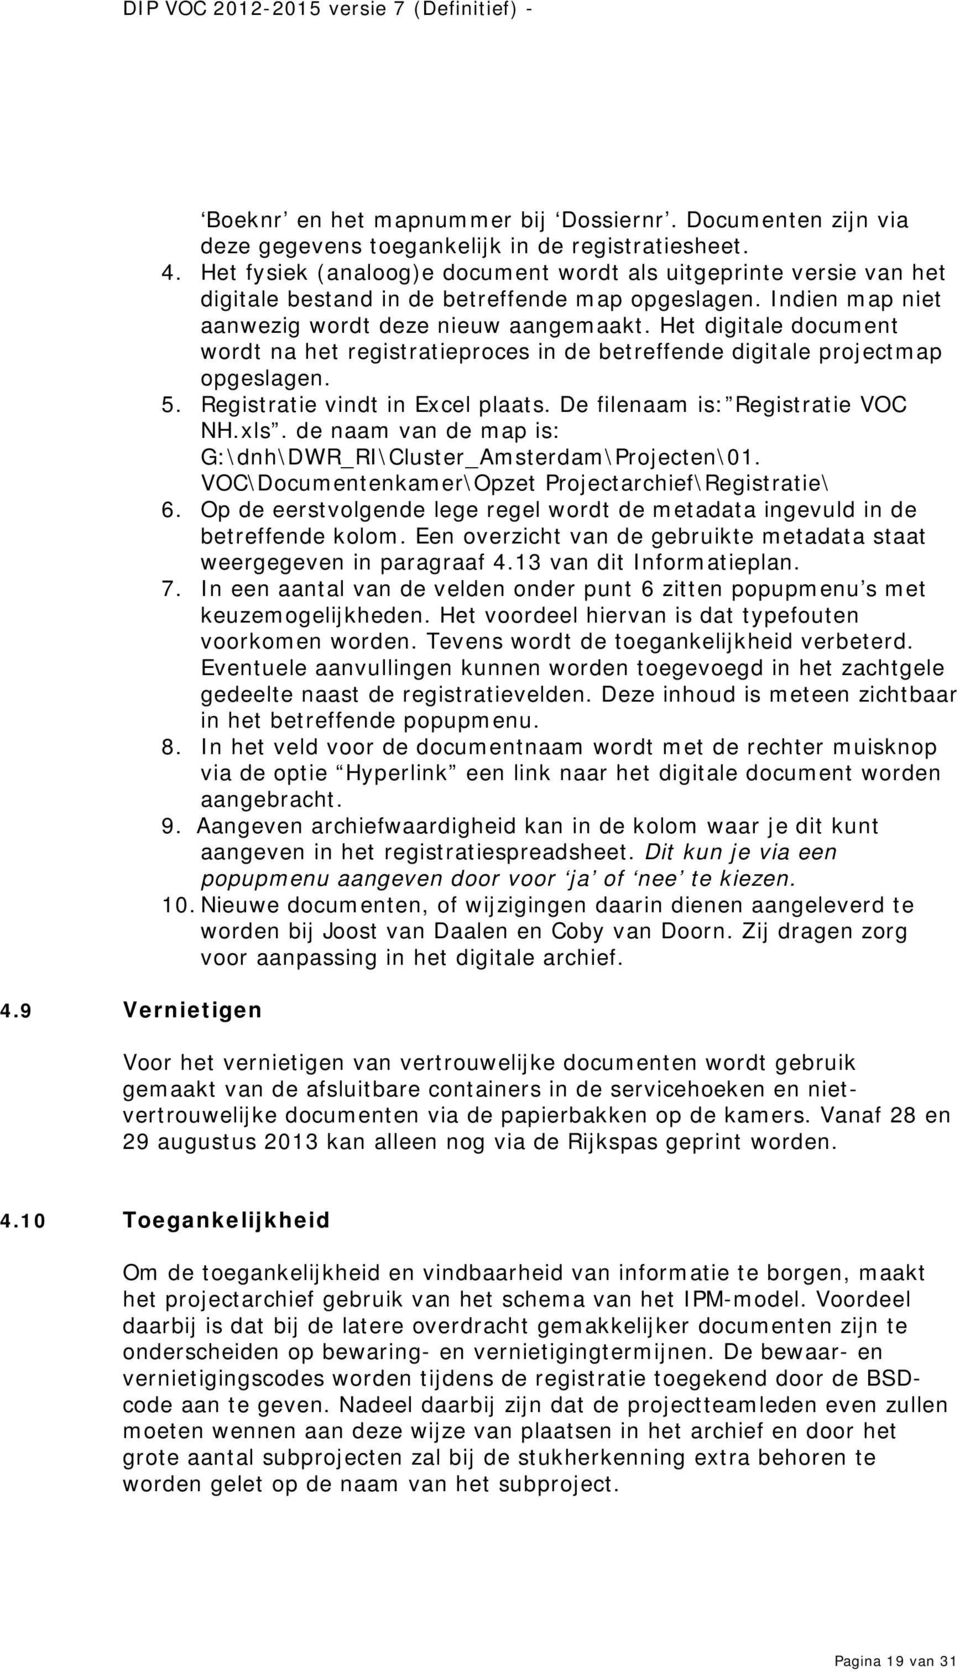 Het digitale document wordt na het registratieproces in de betreffende digitale projectmap opgeslagen. 5. Registratie vindt in Excel plaats. De filenaam is: Registratie VOC NH.xls.